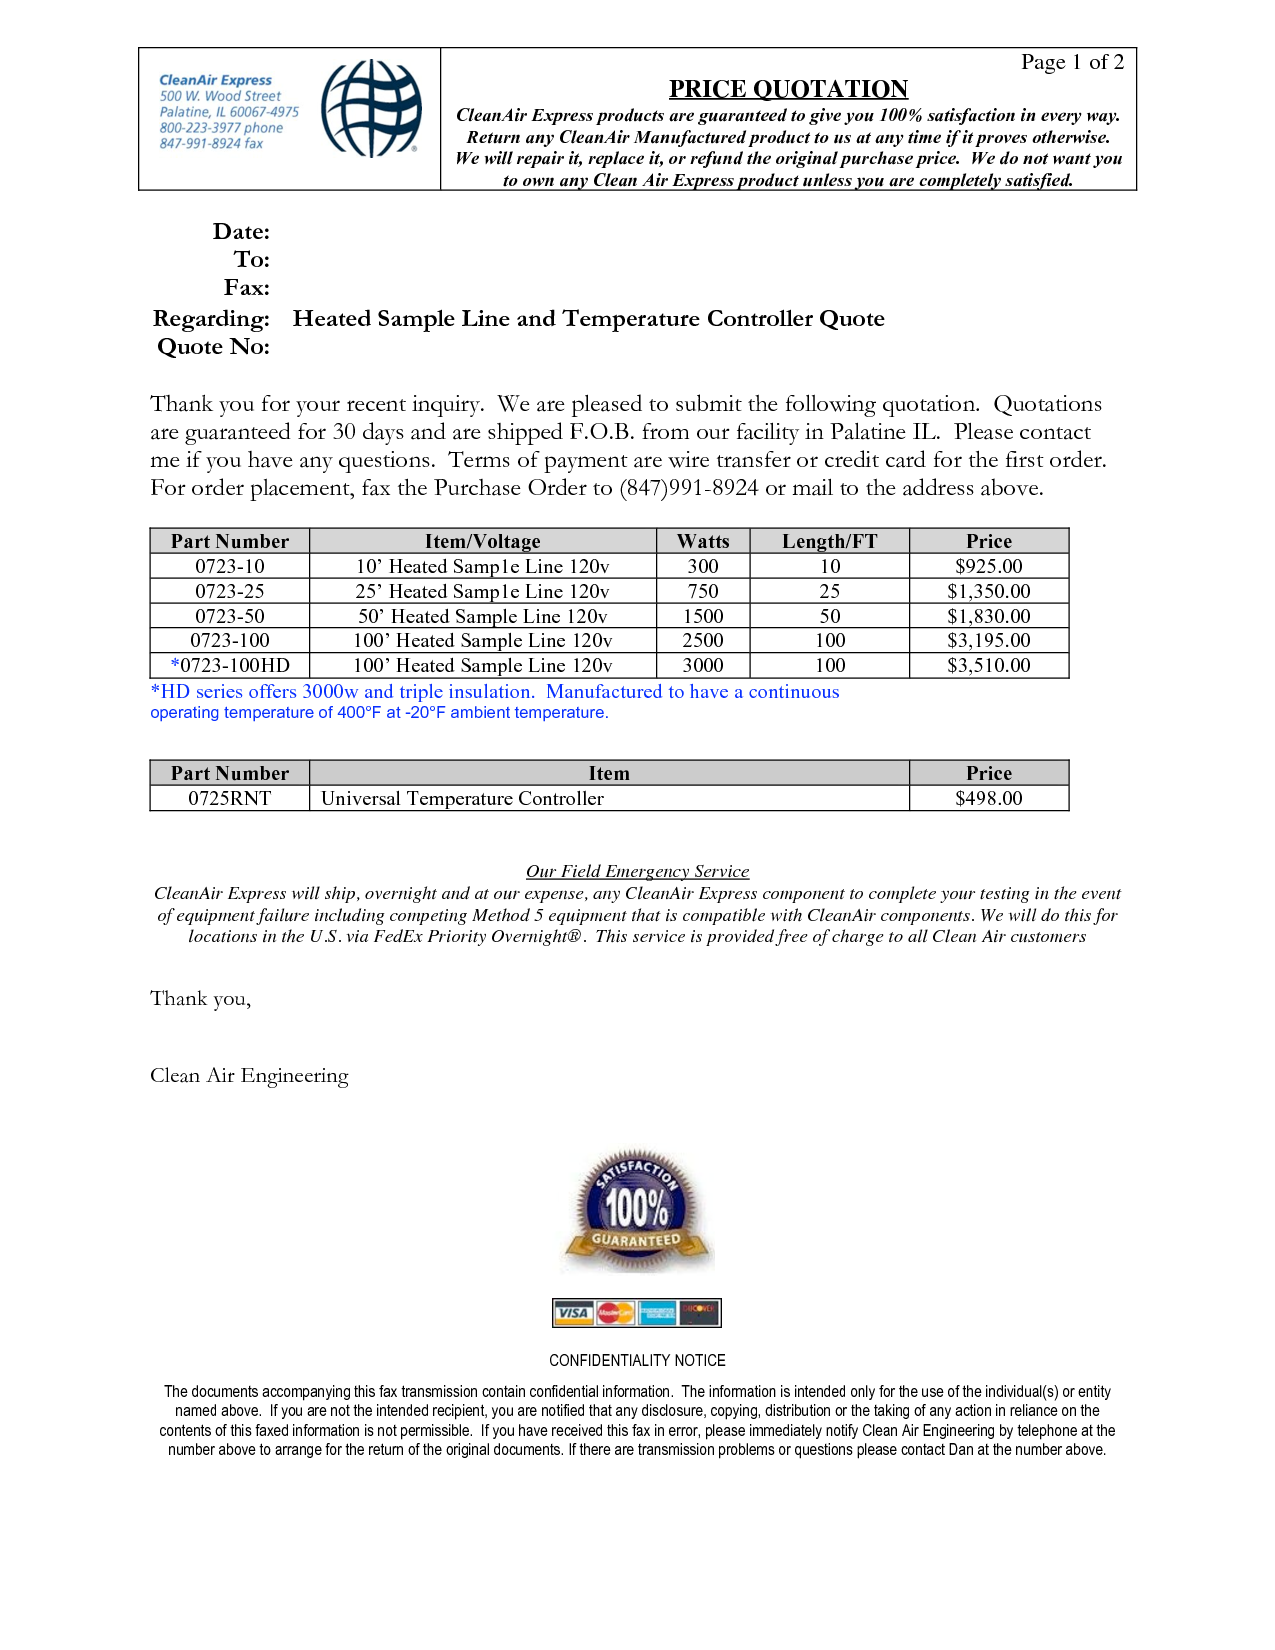 Sample Of Request Letter For Price Quote, House Wiring